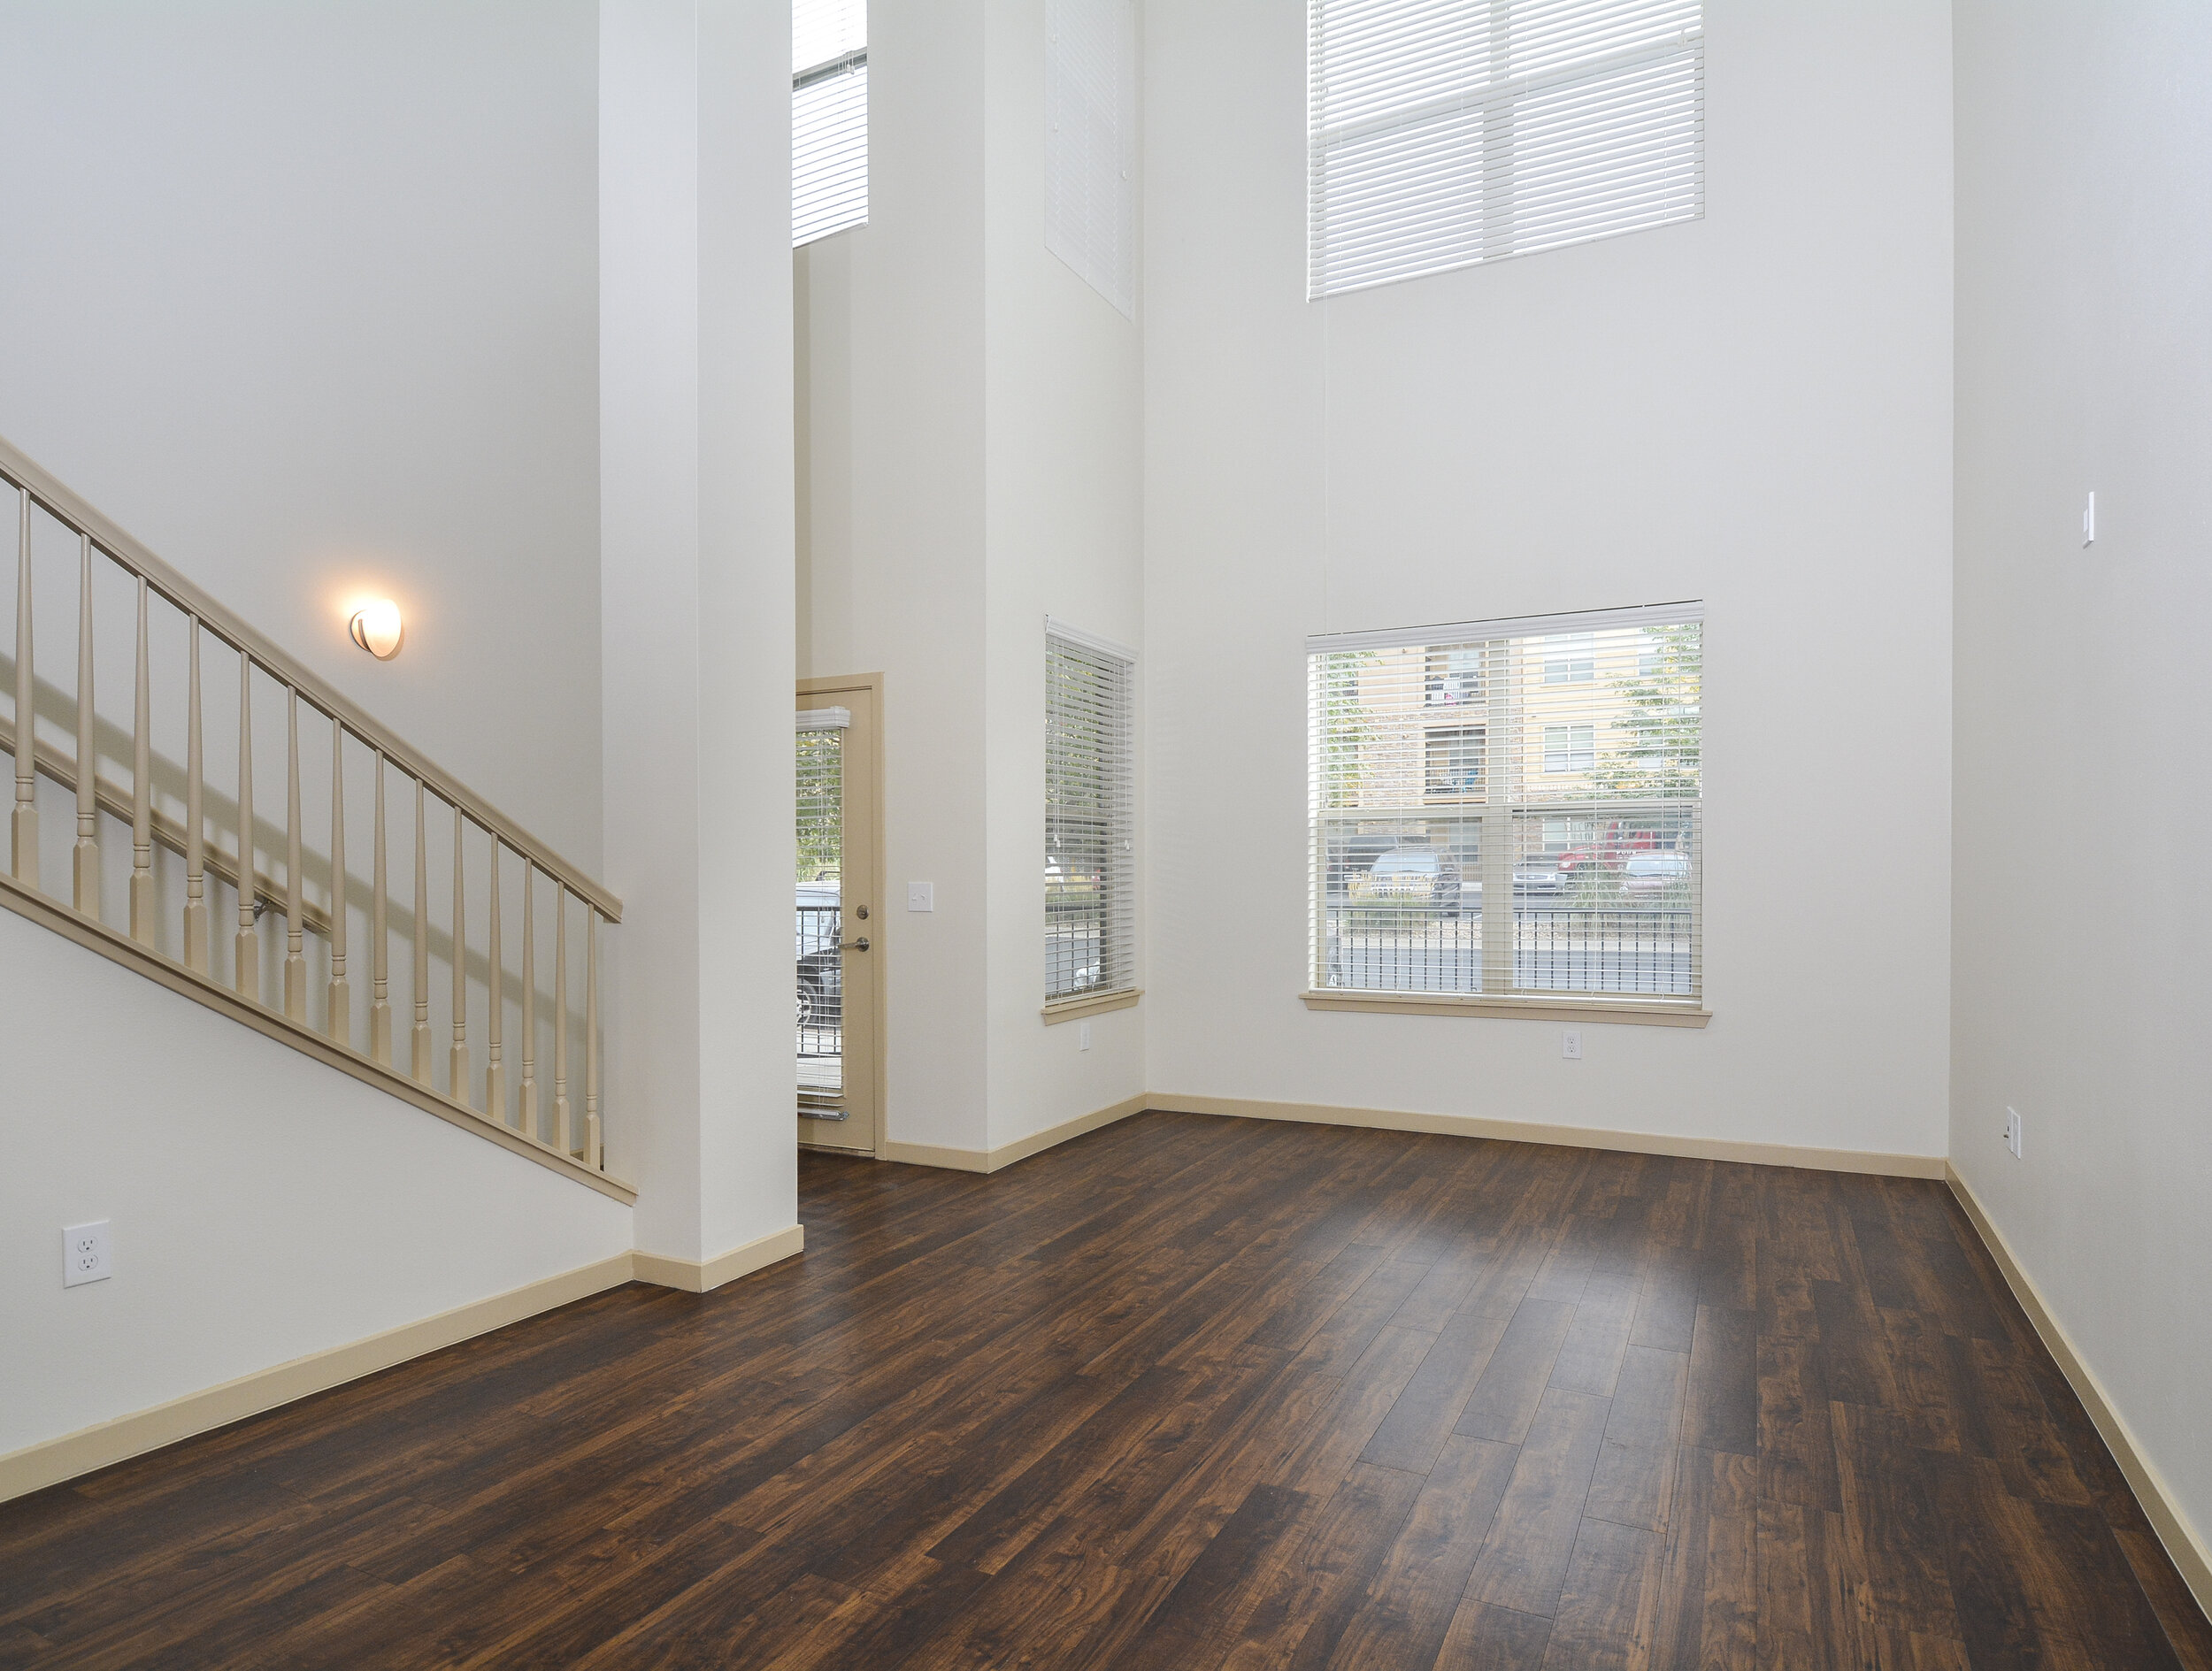 06-Mulitlevel Units Included Soaring Ceilings With Ample Natural Light.jpg